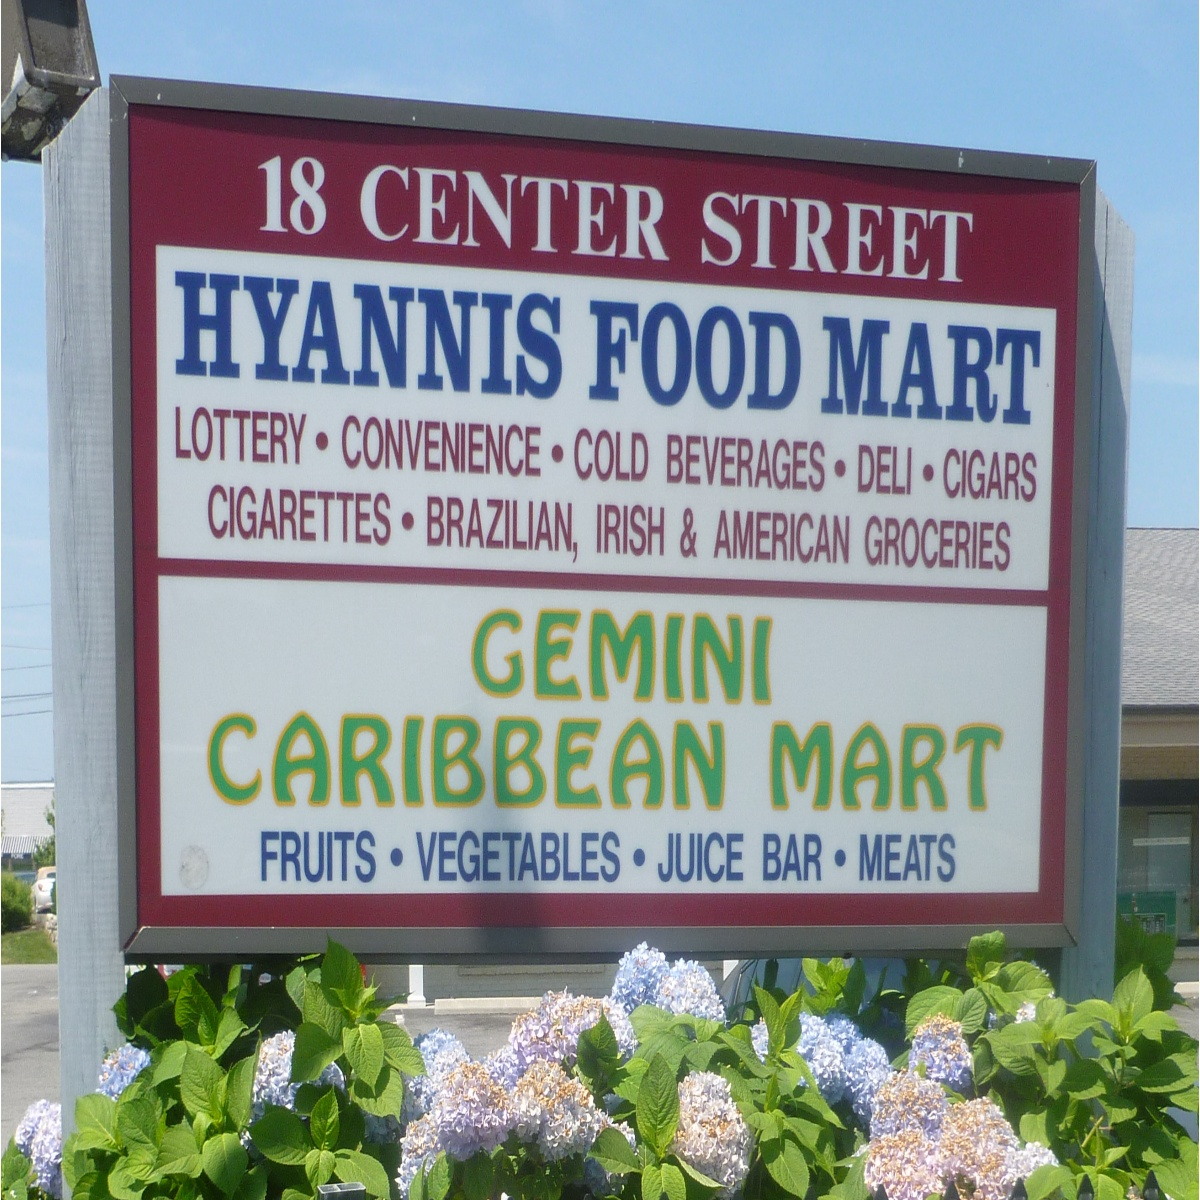 Gemini Carribean Mart